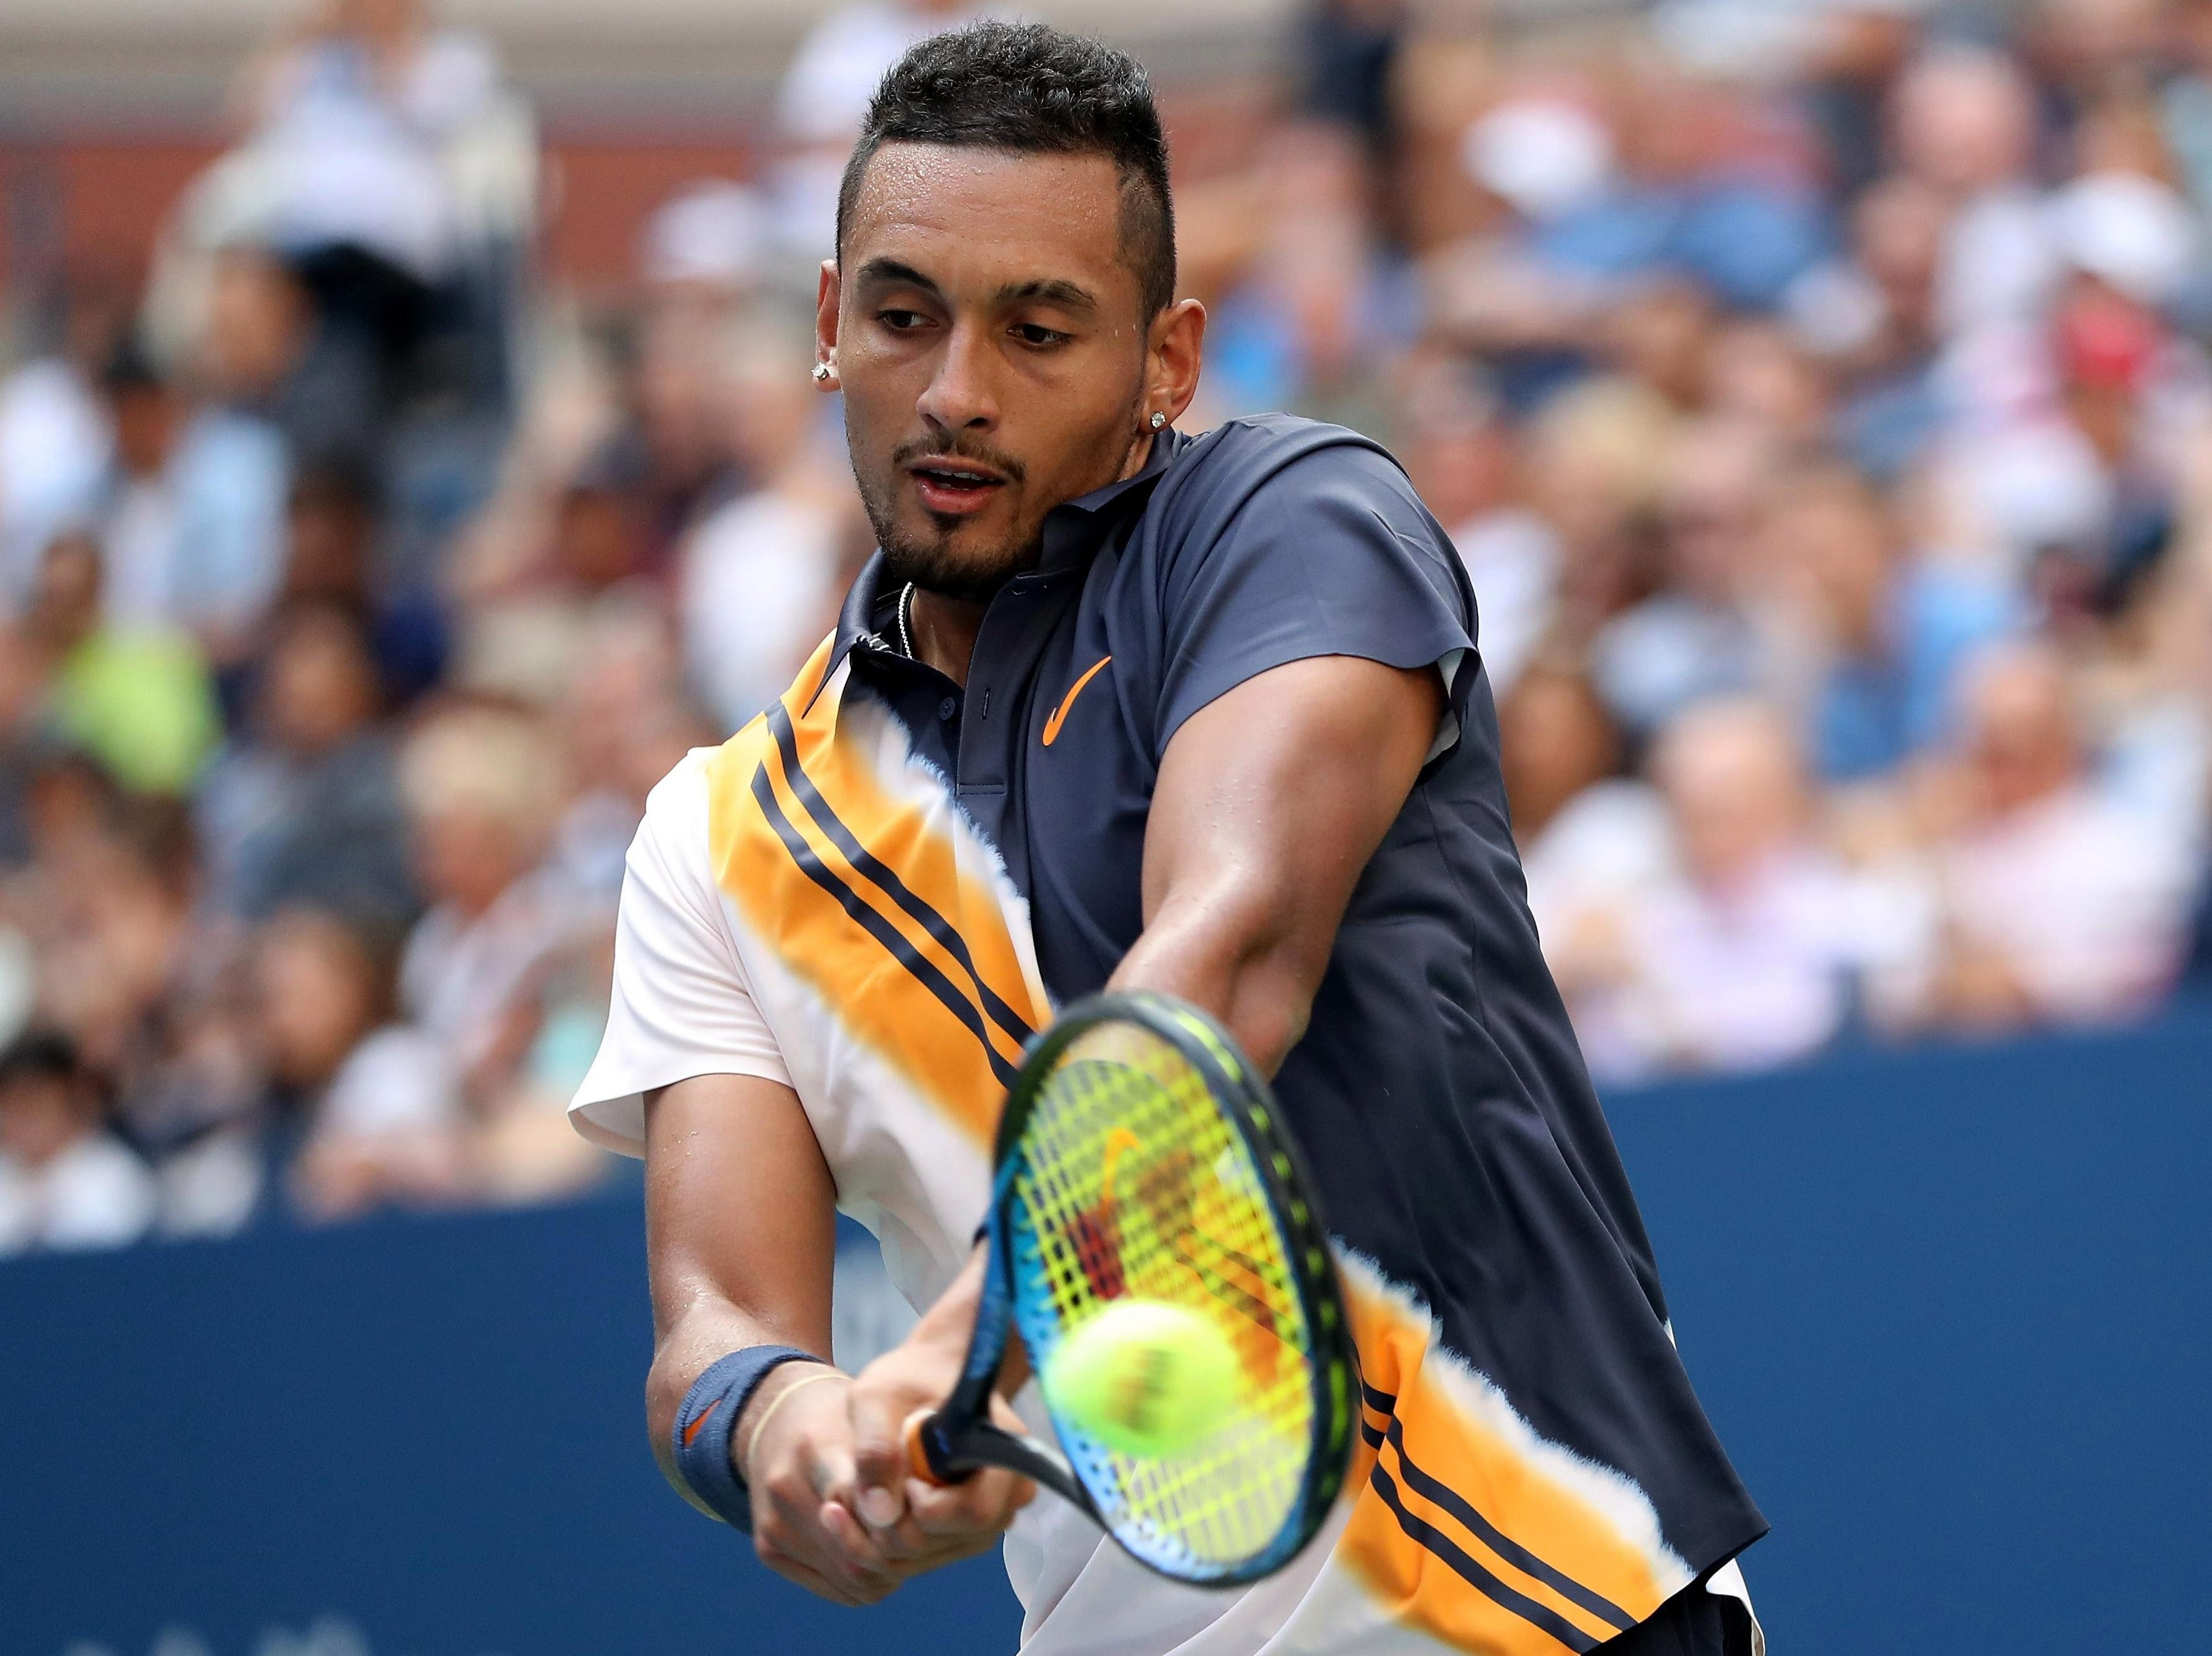 Kyrgios has still never been beyond the third round at Flushing Meadows and suffered his third exit at this stage